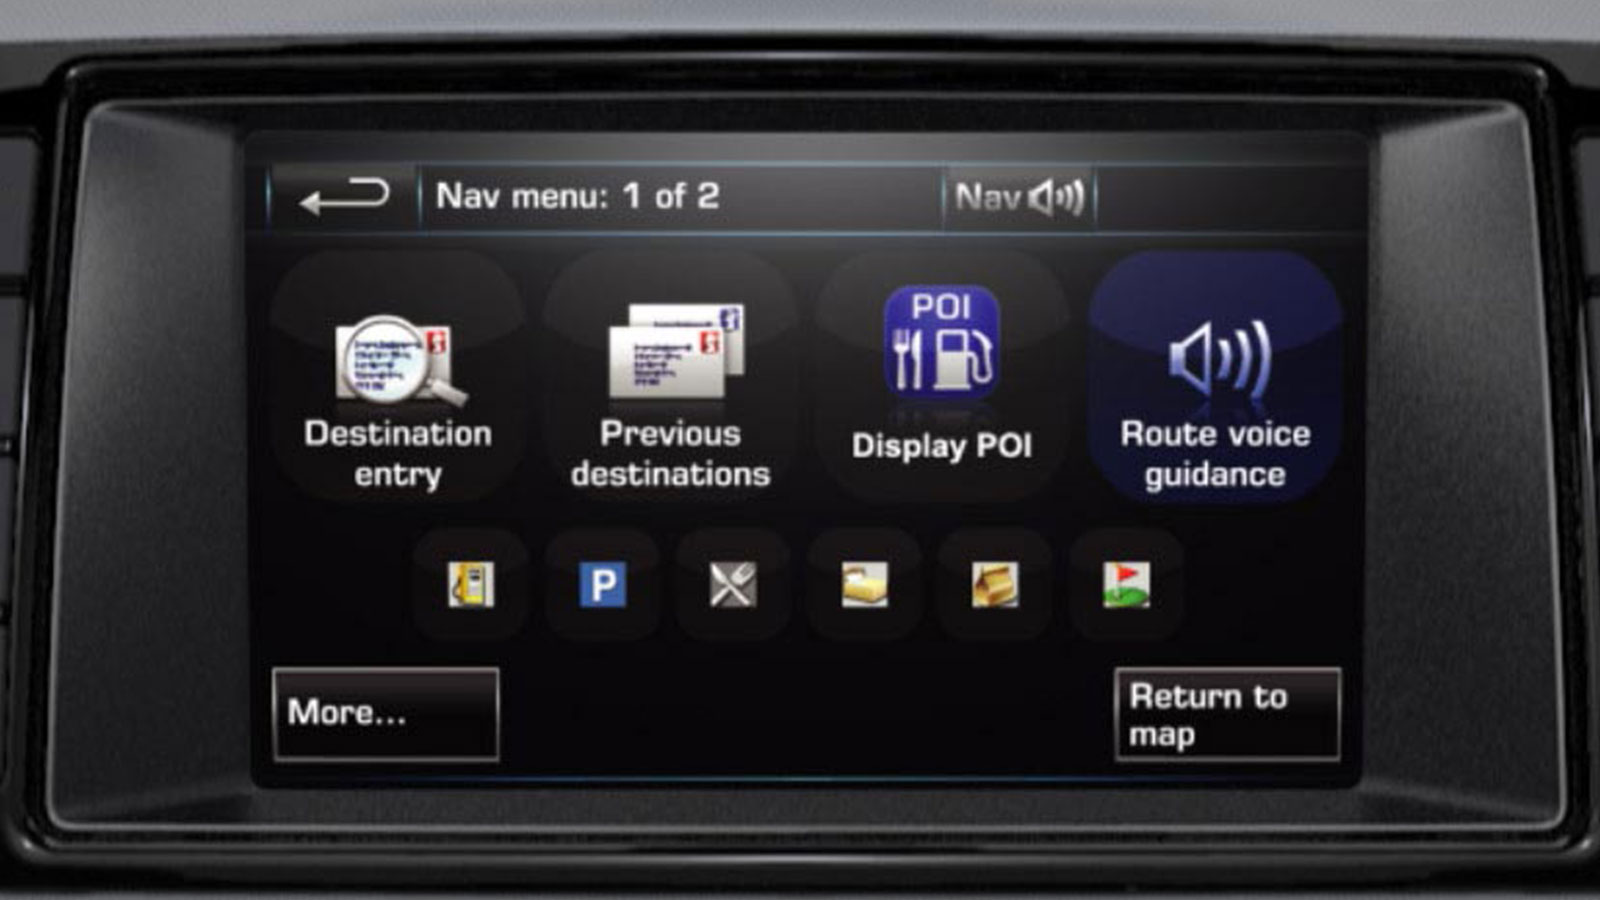 Incontrol Navigation Voice Guidance On-Screen Display.